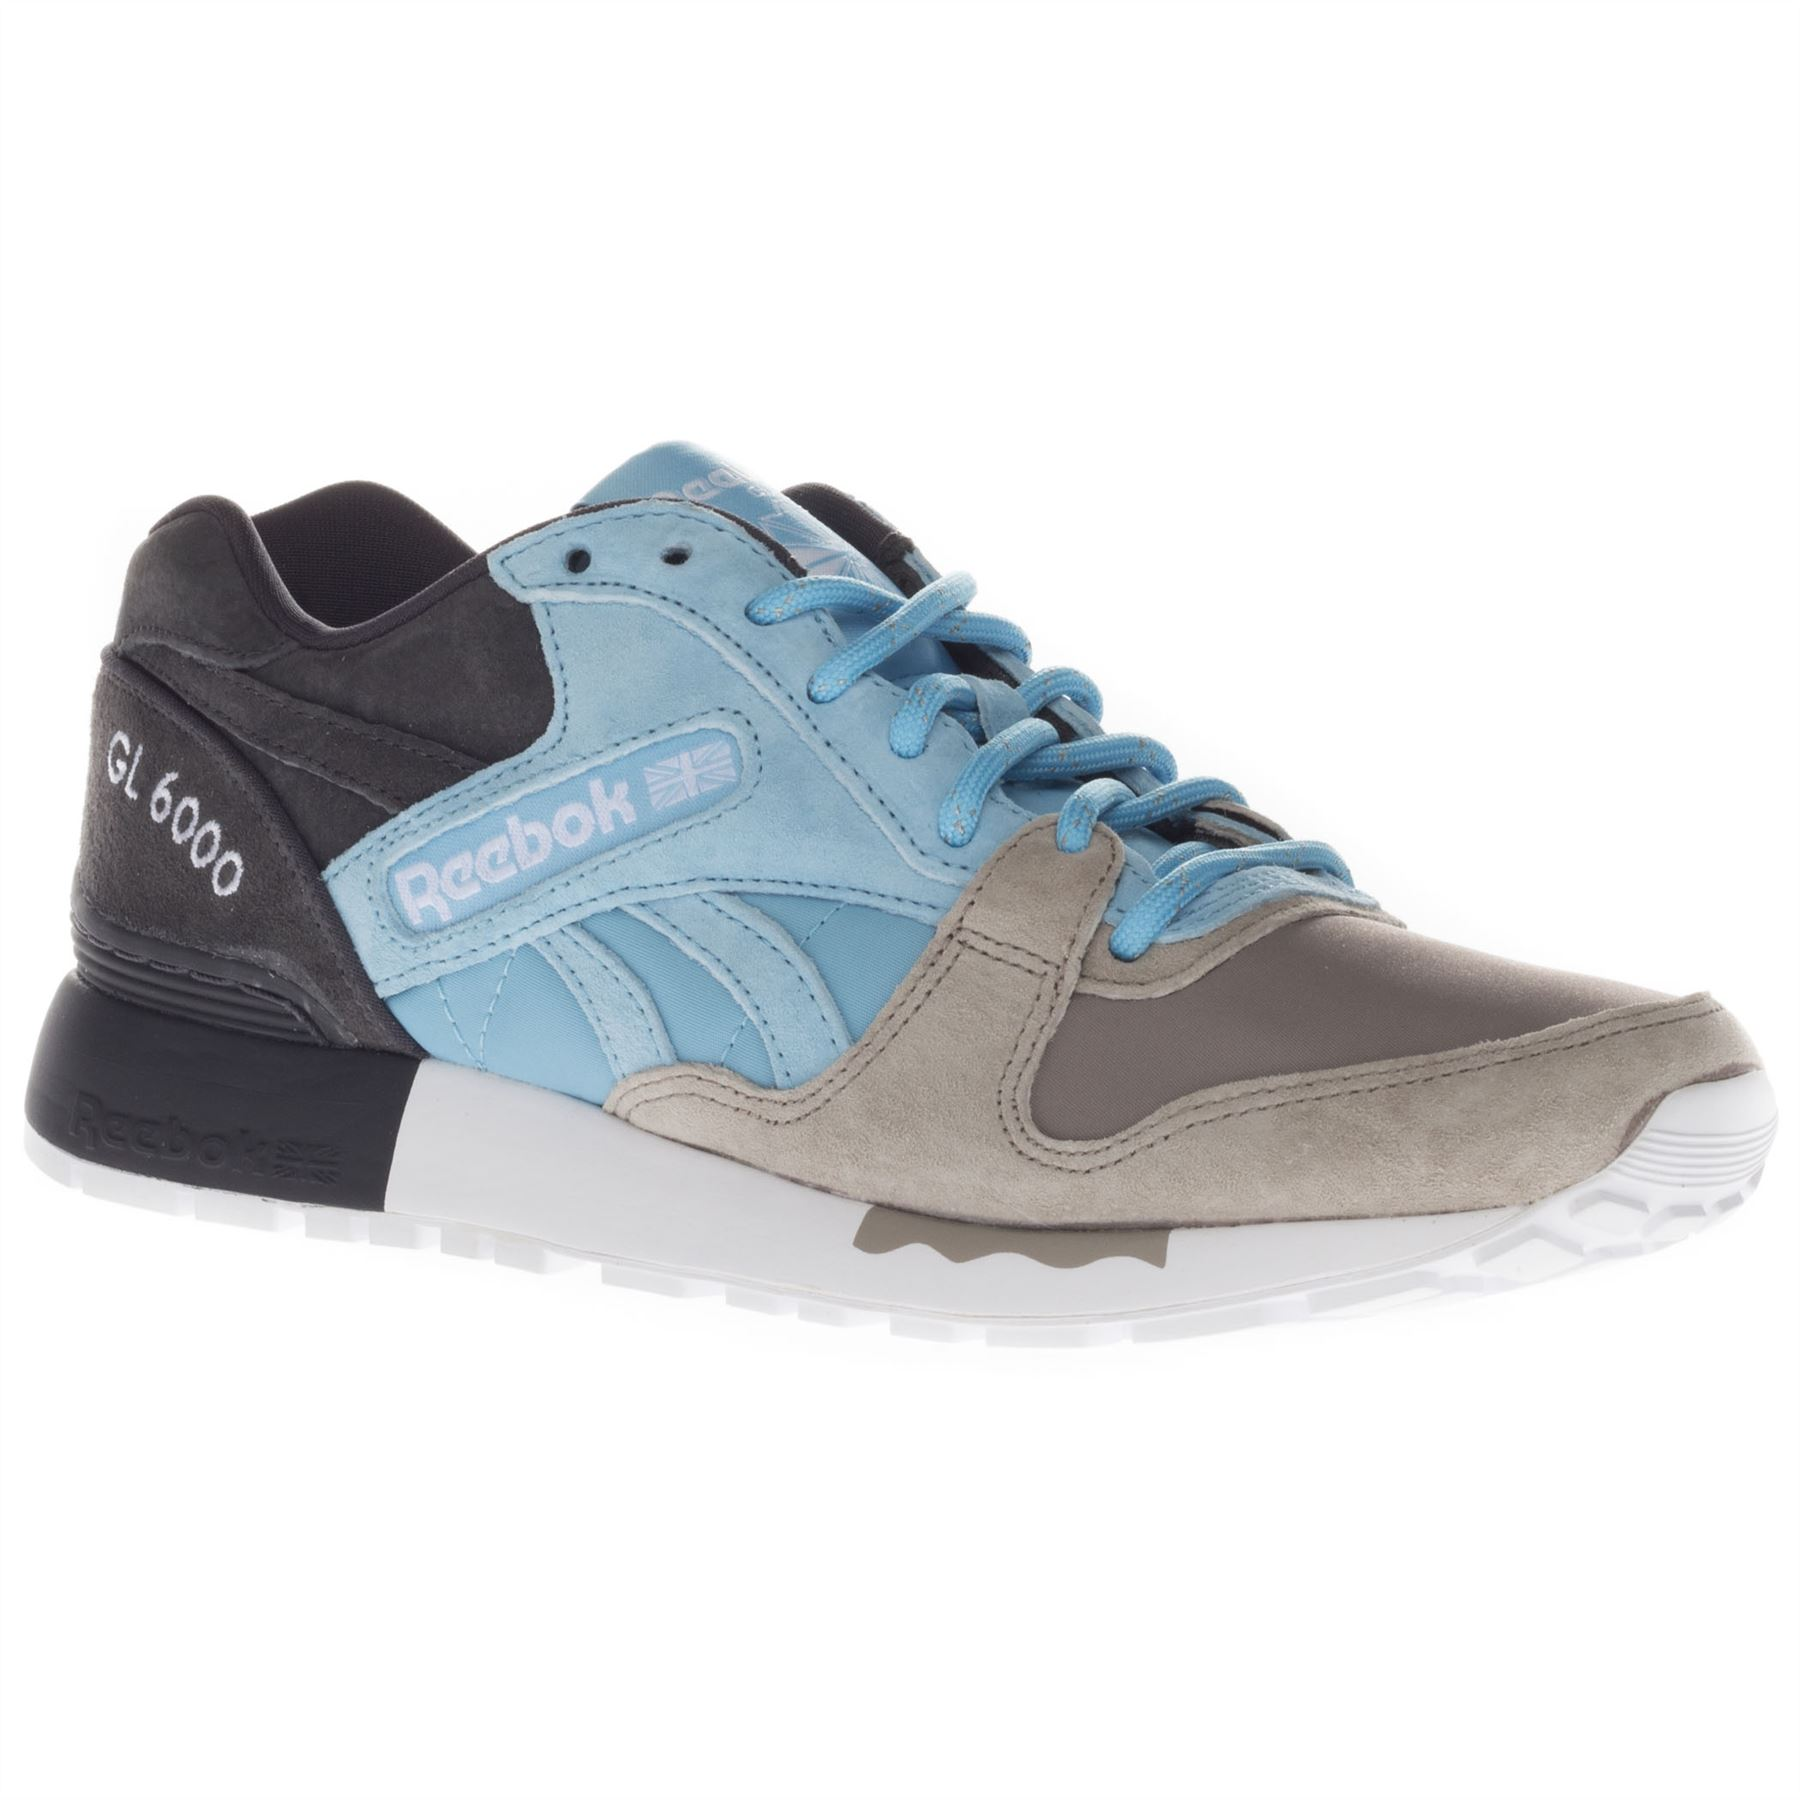 Reebok men s gl sne trainers running gym lightweight